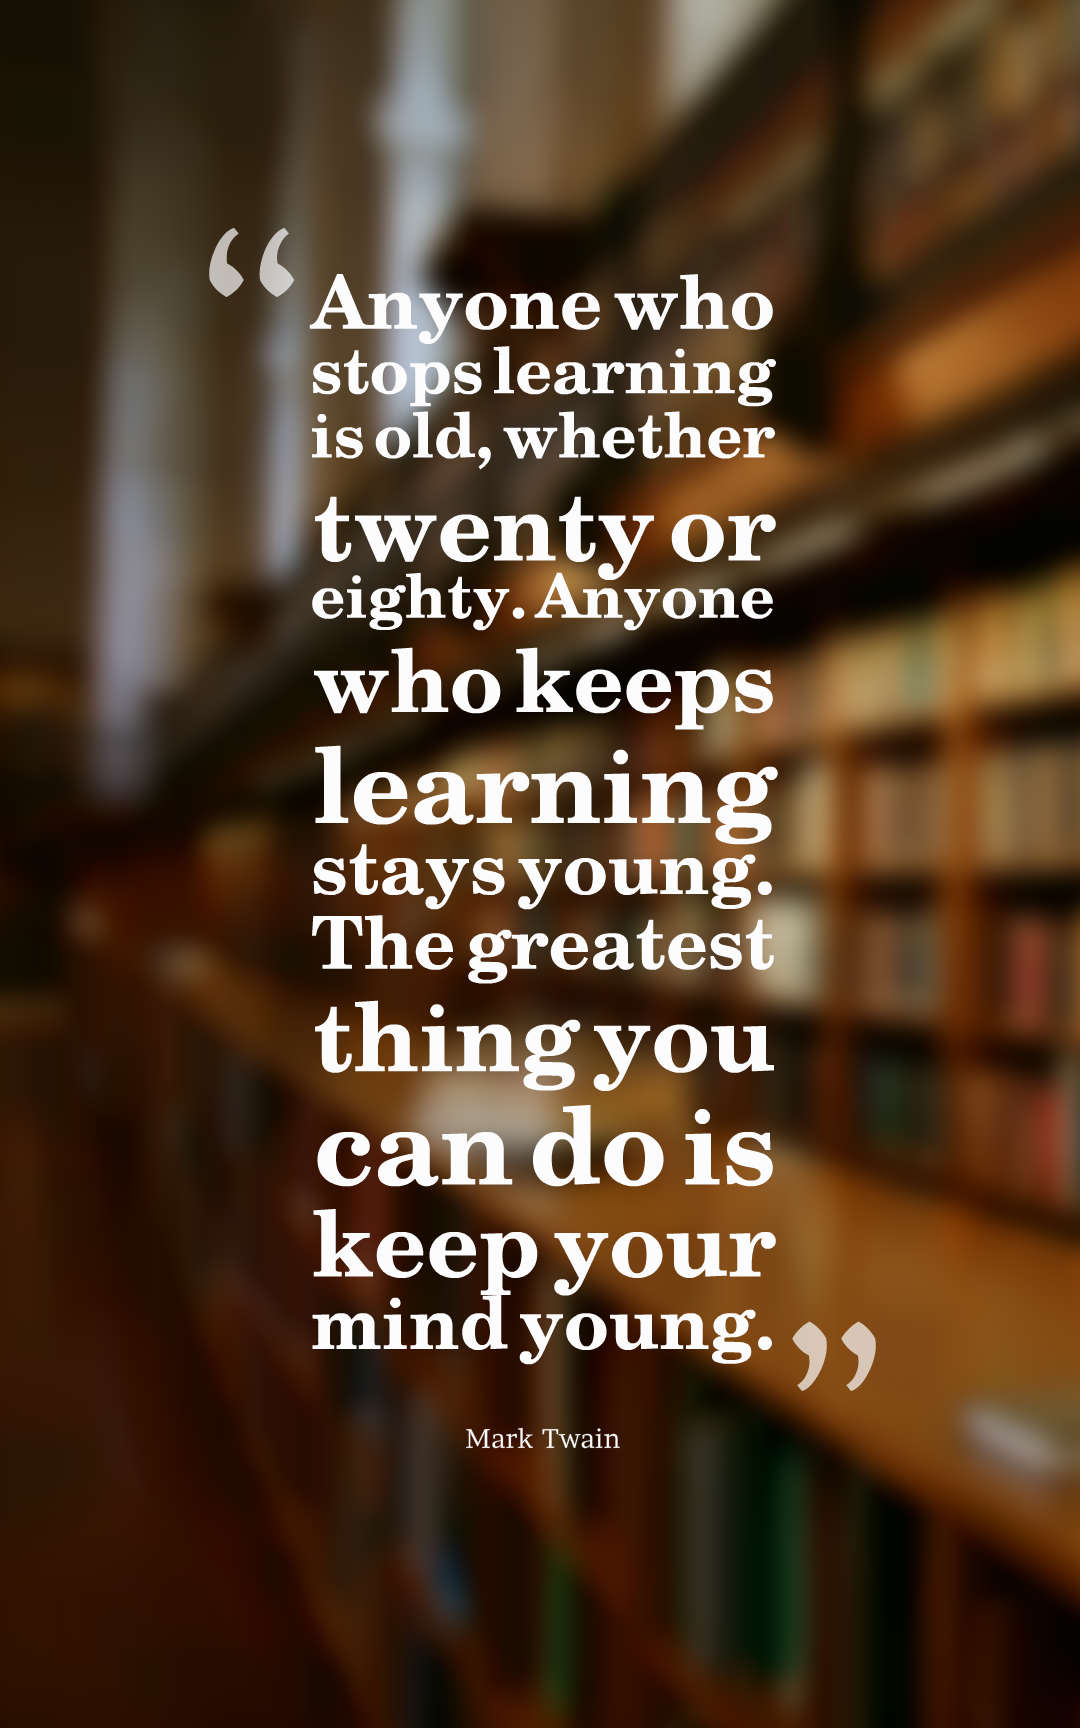 mark twain Anyone who stops learning is old